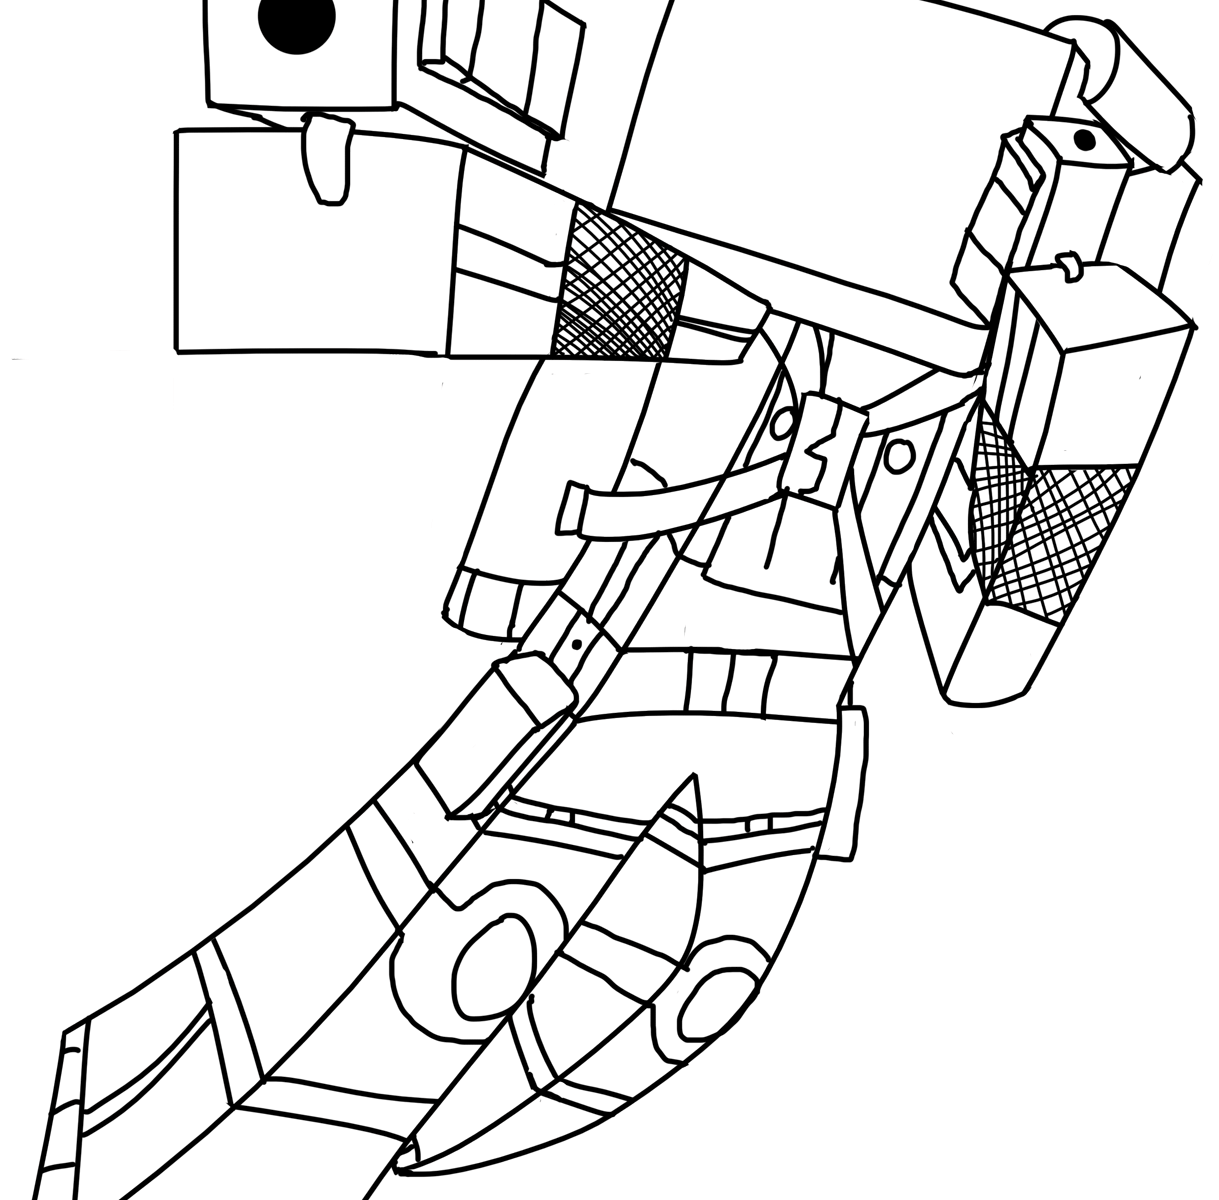 christmas minecraft coloring pages | Minecraft Ender Dragon Drawing at GetDrawings.com | Free ...